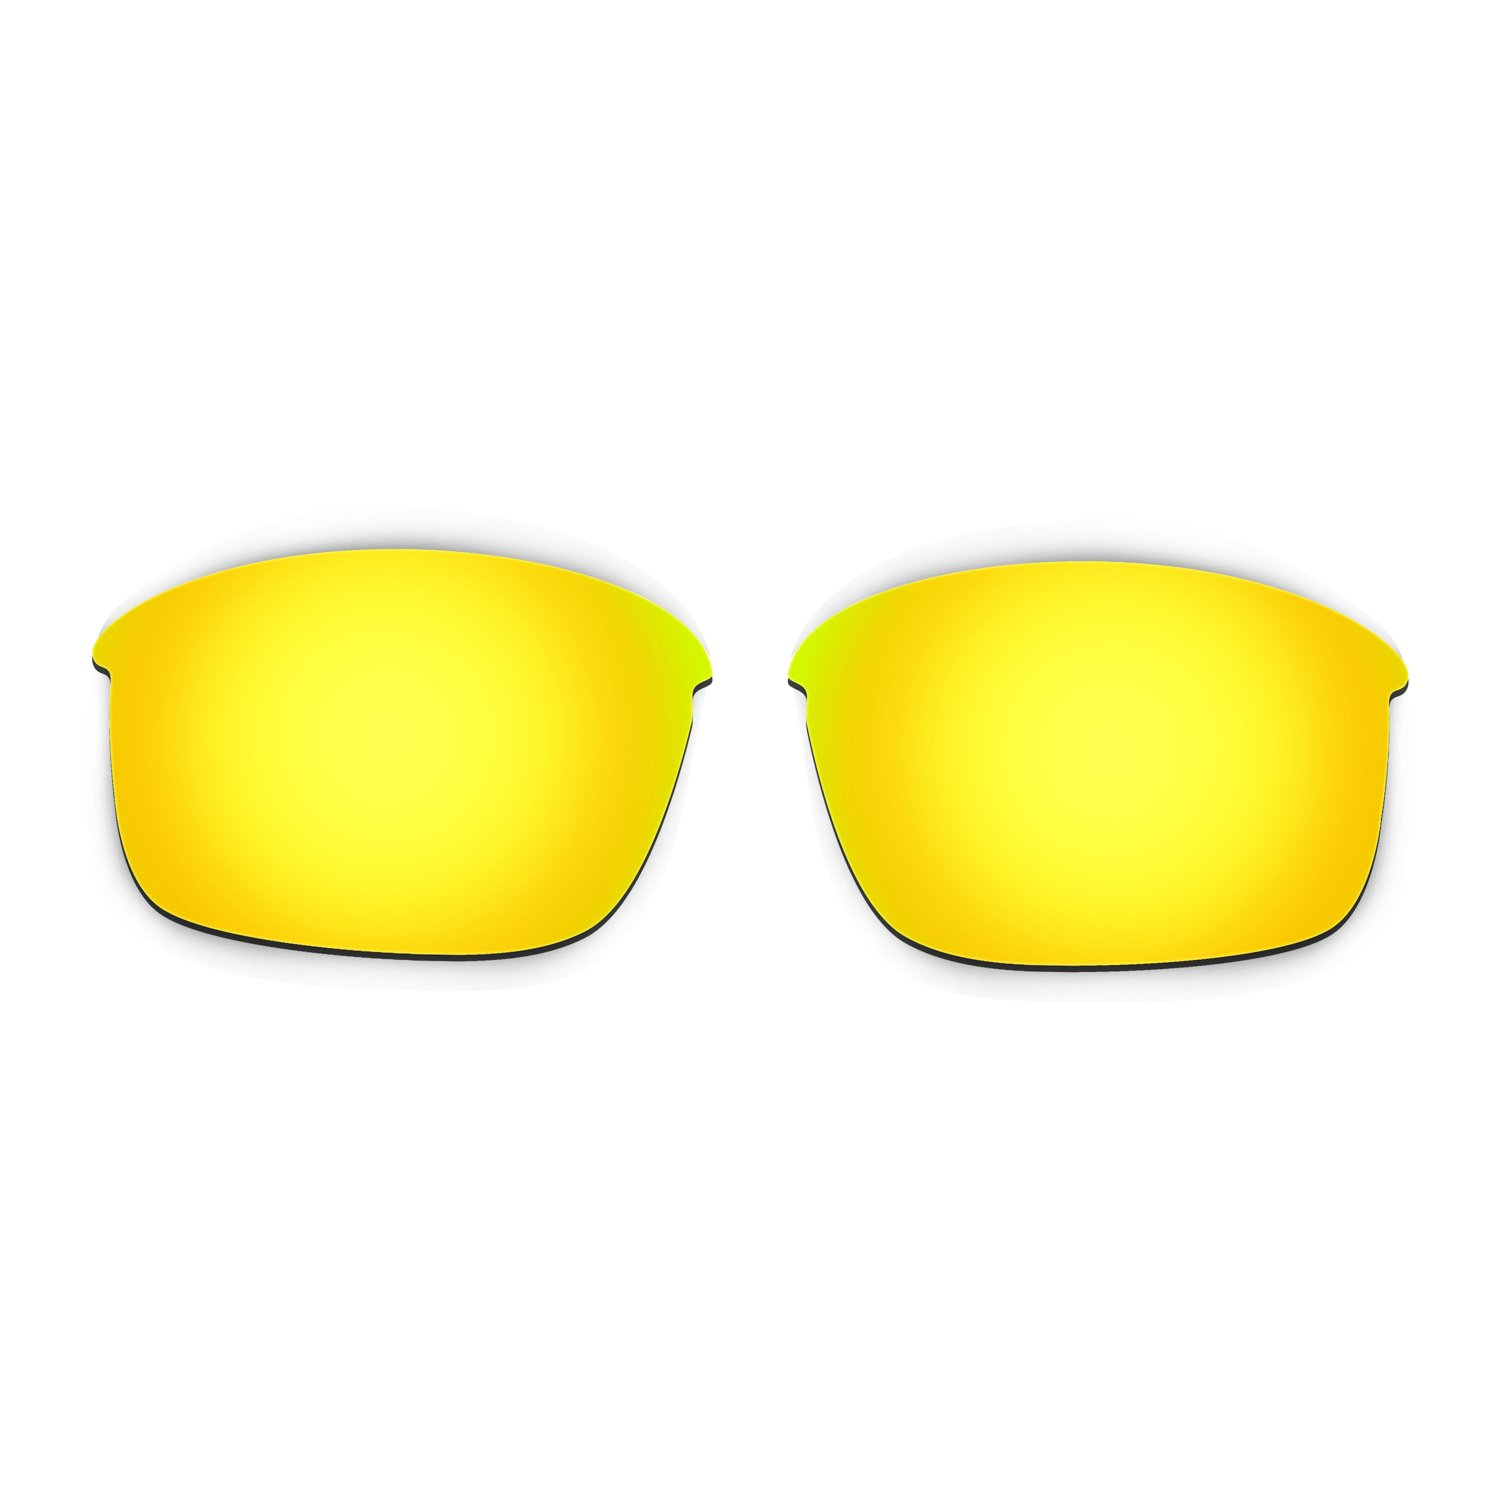 a05124b27d Amazon.com  Hkuco Mens Replacement Lenses For Oakley Bottle Rocket  Red Blue 24K Gold Emerald Green Sunglasses  Clothing